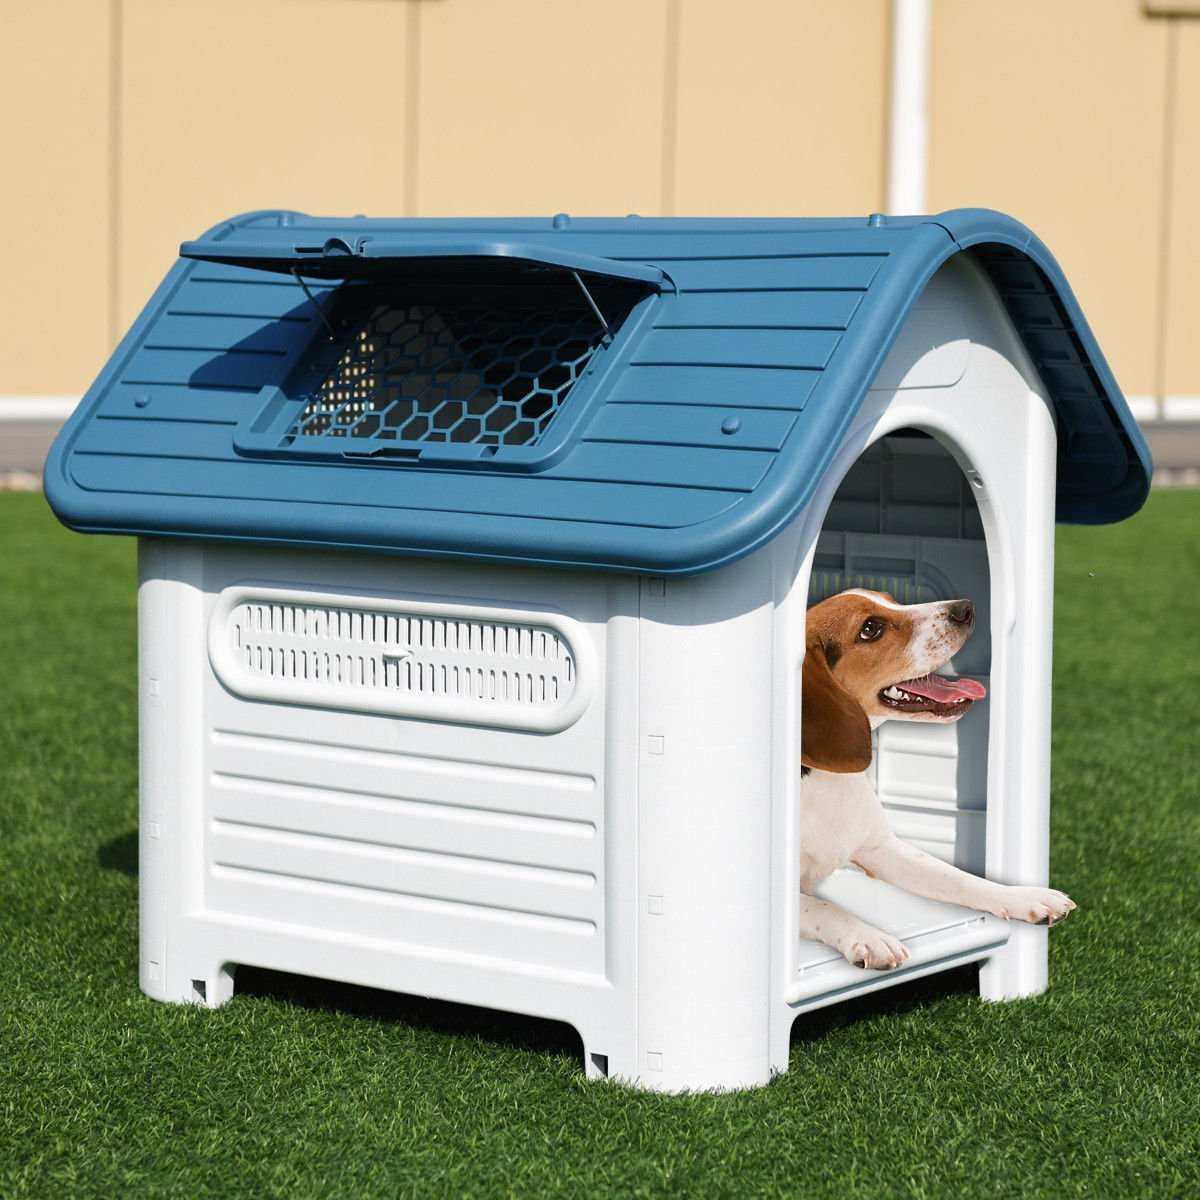 SENYEPETS Outdoor Indoor Plastic Dog Houses Carry Skylight Portable Pet Waterproof Plastic Dog Kennel Puppy Shelter (Blue)